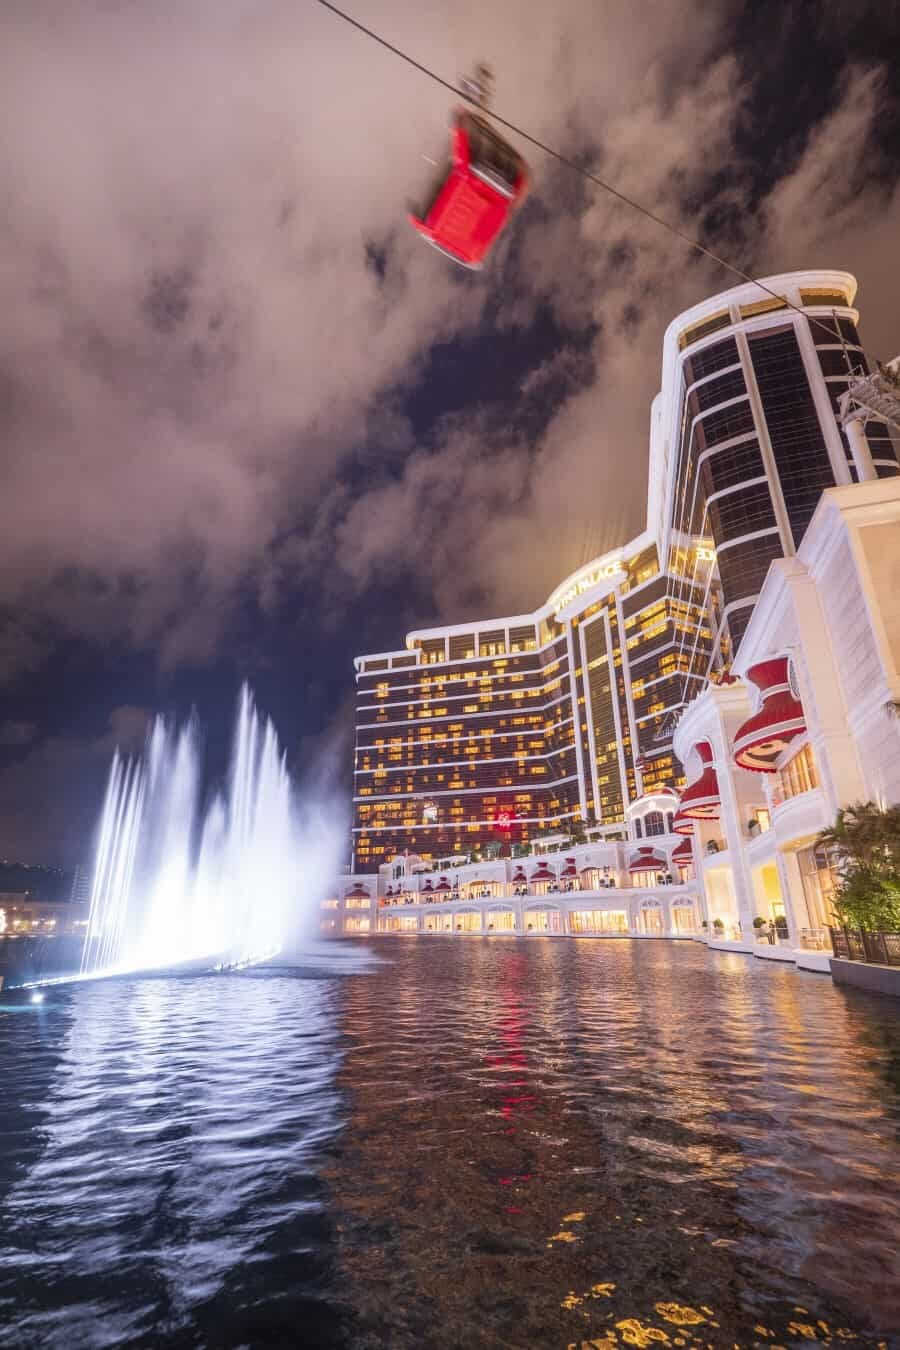 Wynn Macao Fountains - Macao photography locations